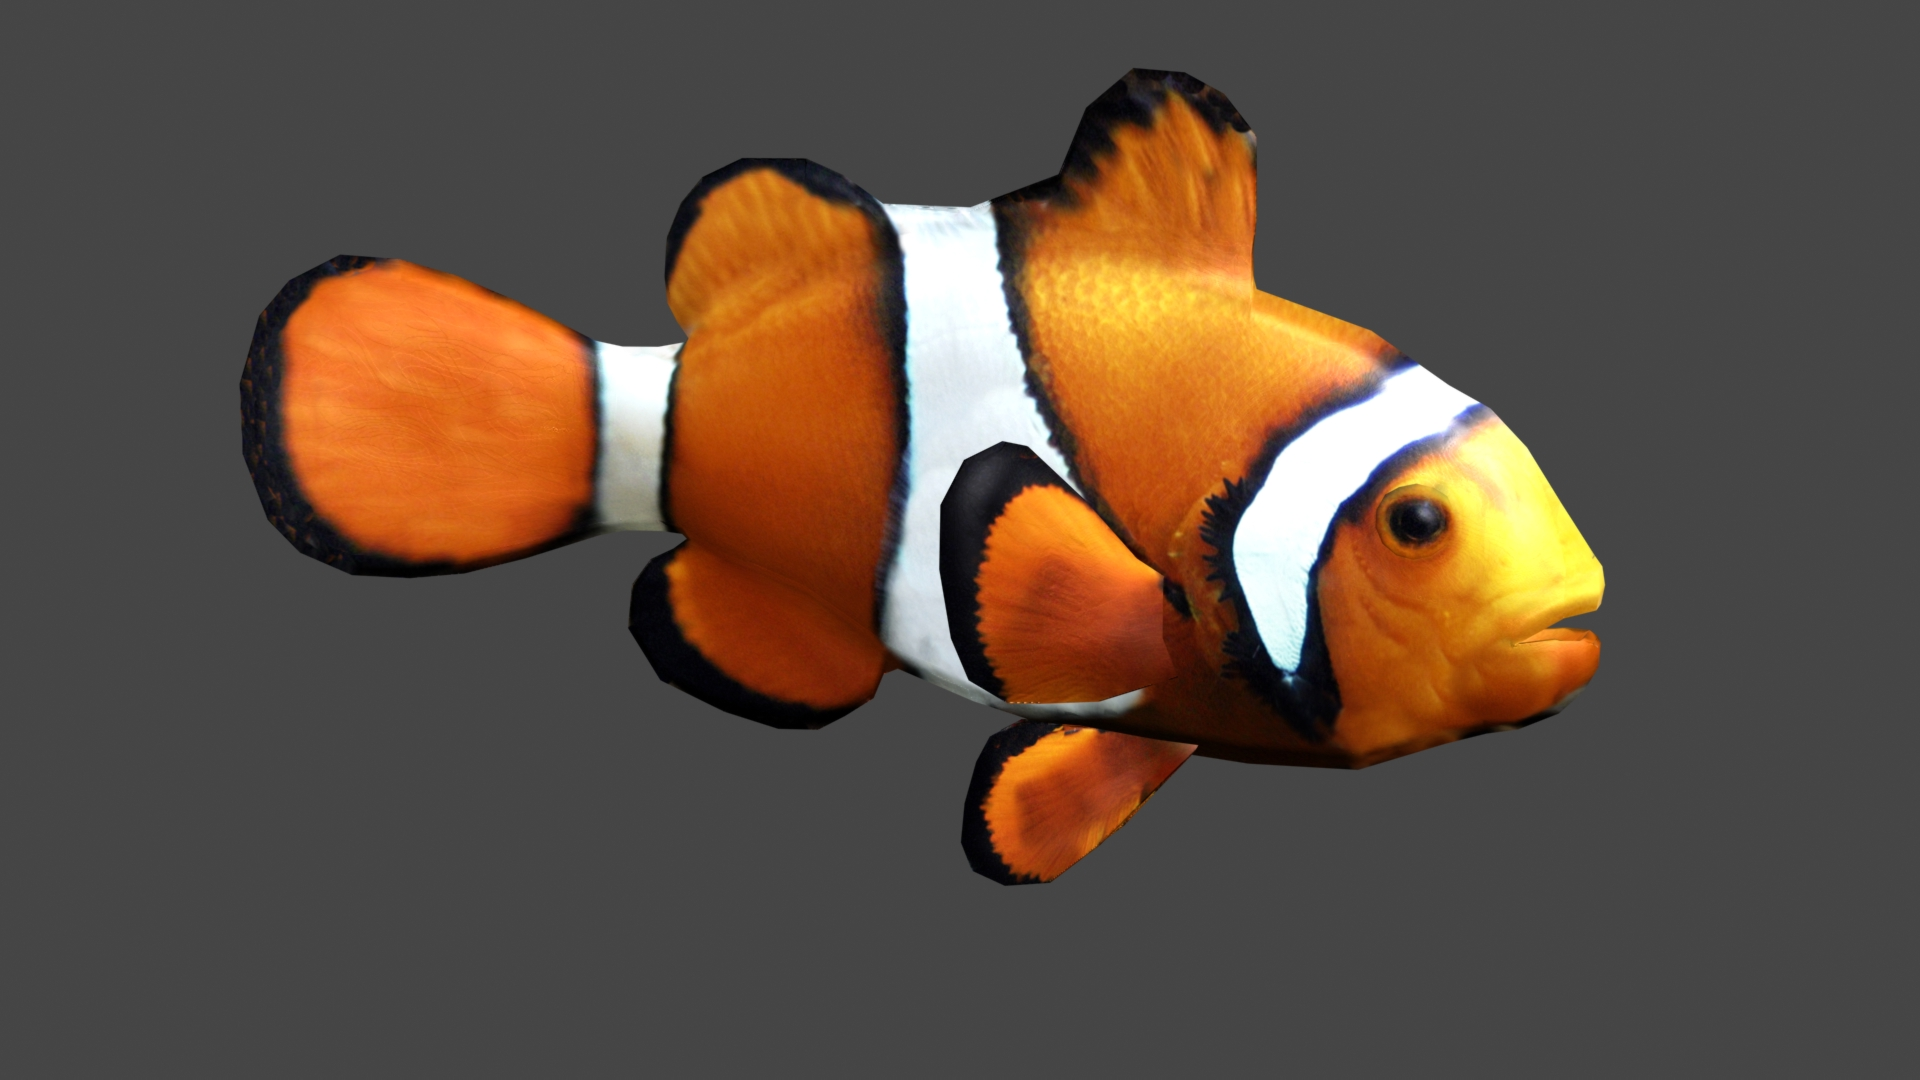 Clownfish image jaws of evolution mod db for Pictures of clown fish